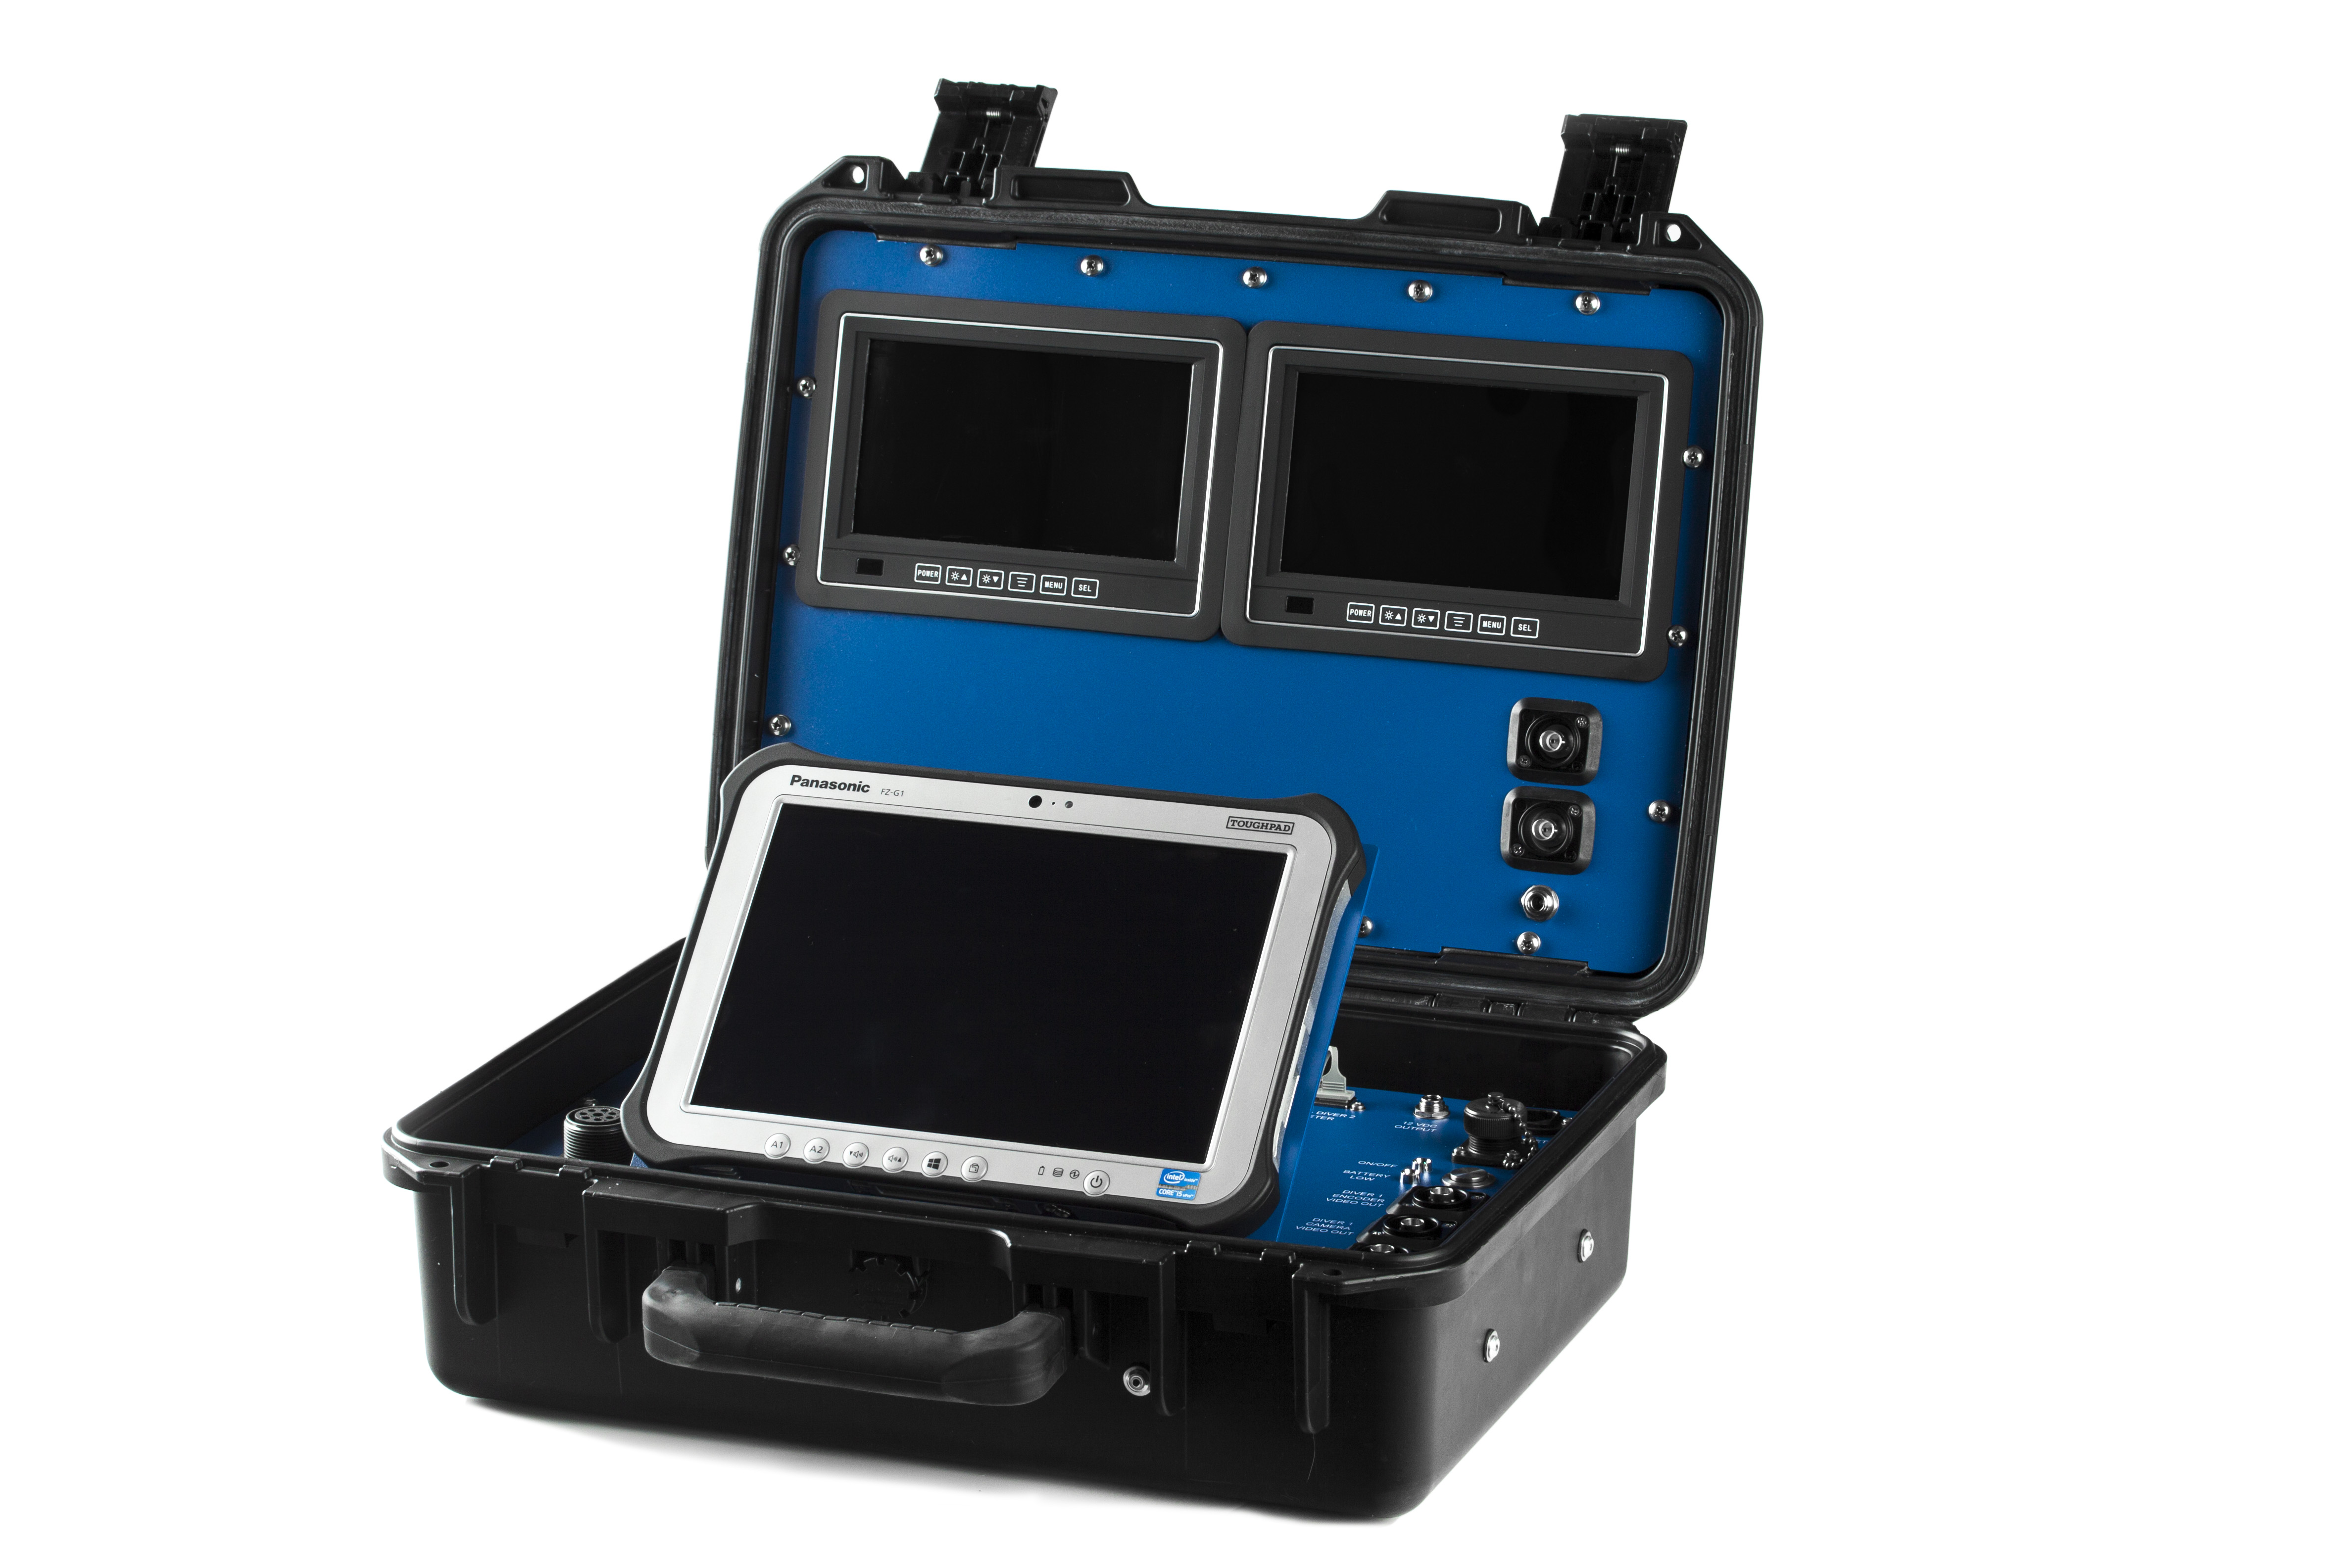 Axview 2v p portable subsea video depth recording system - Dive system shop ...